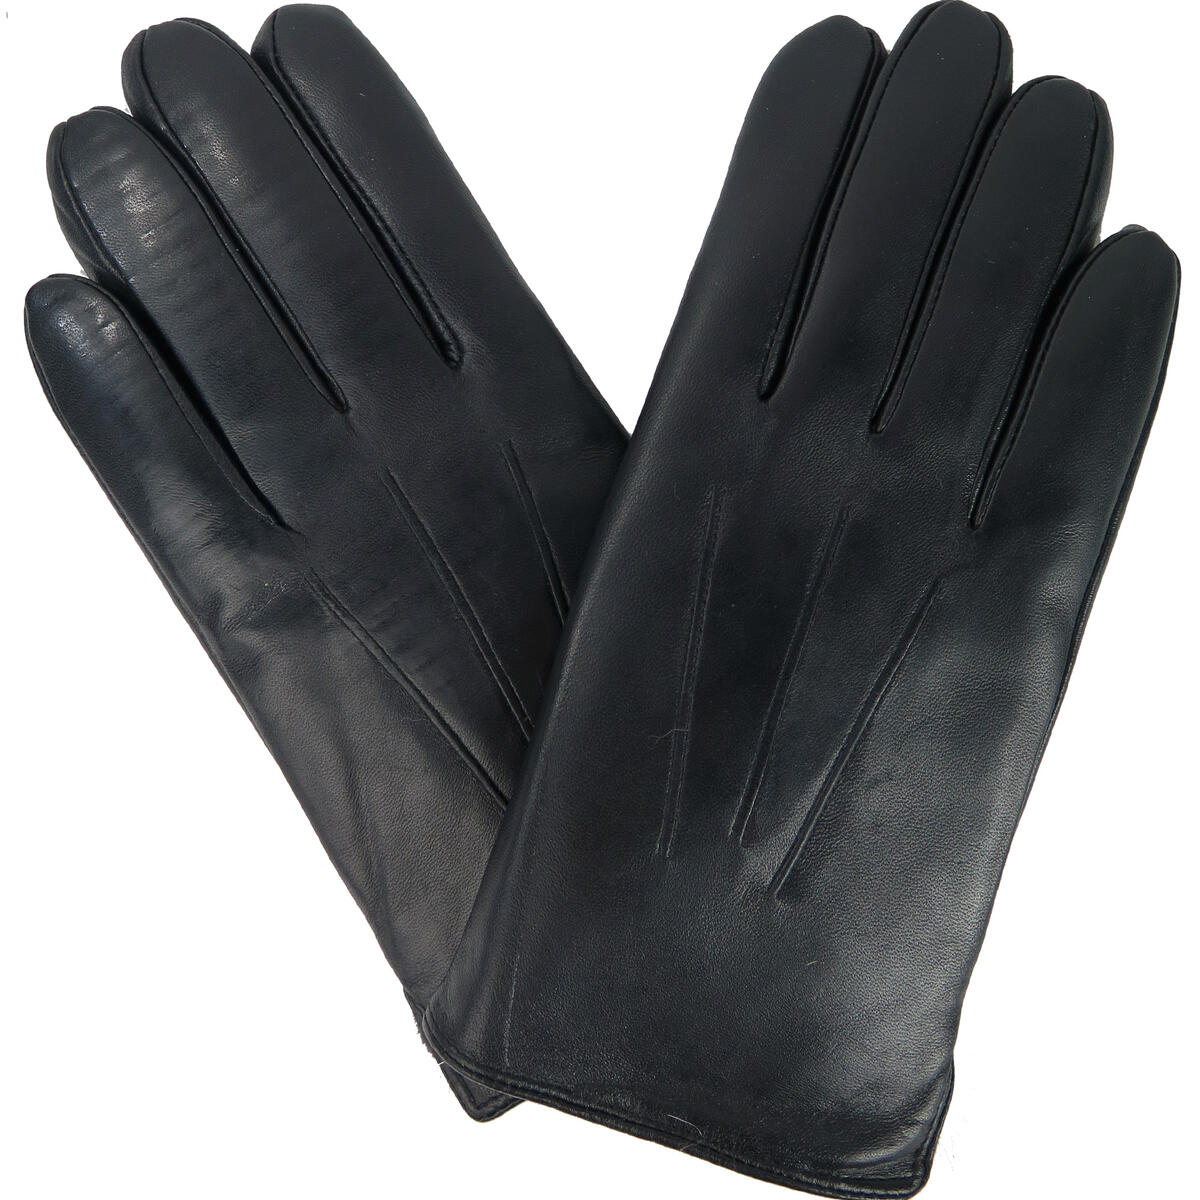 Debra Weitzner Leather Gloves for Men Fur Lined Warm Winter Gloves Touchscreen Black size large